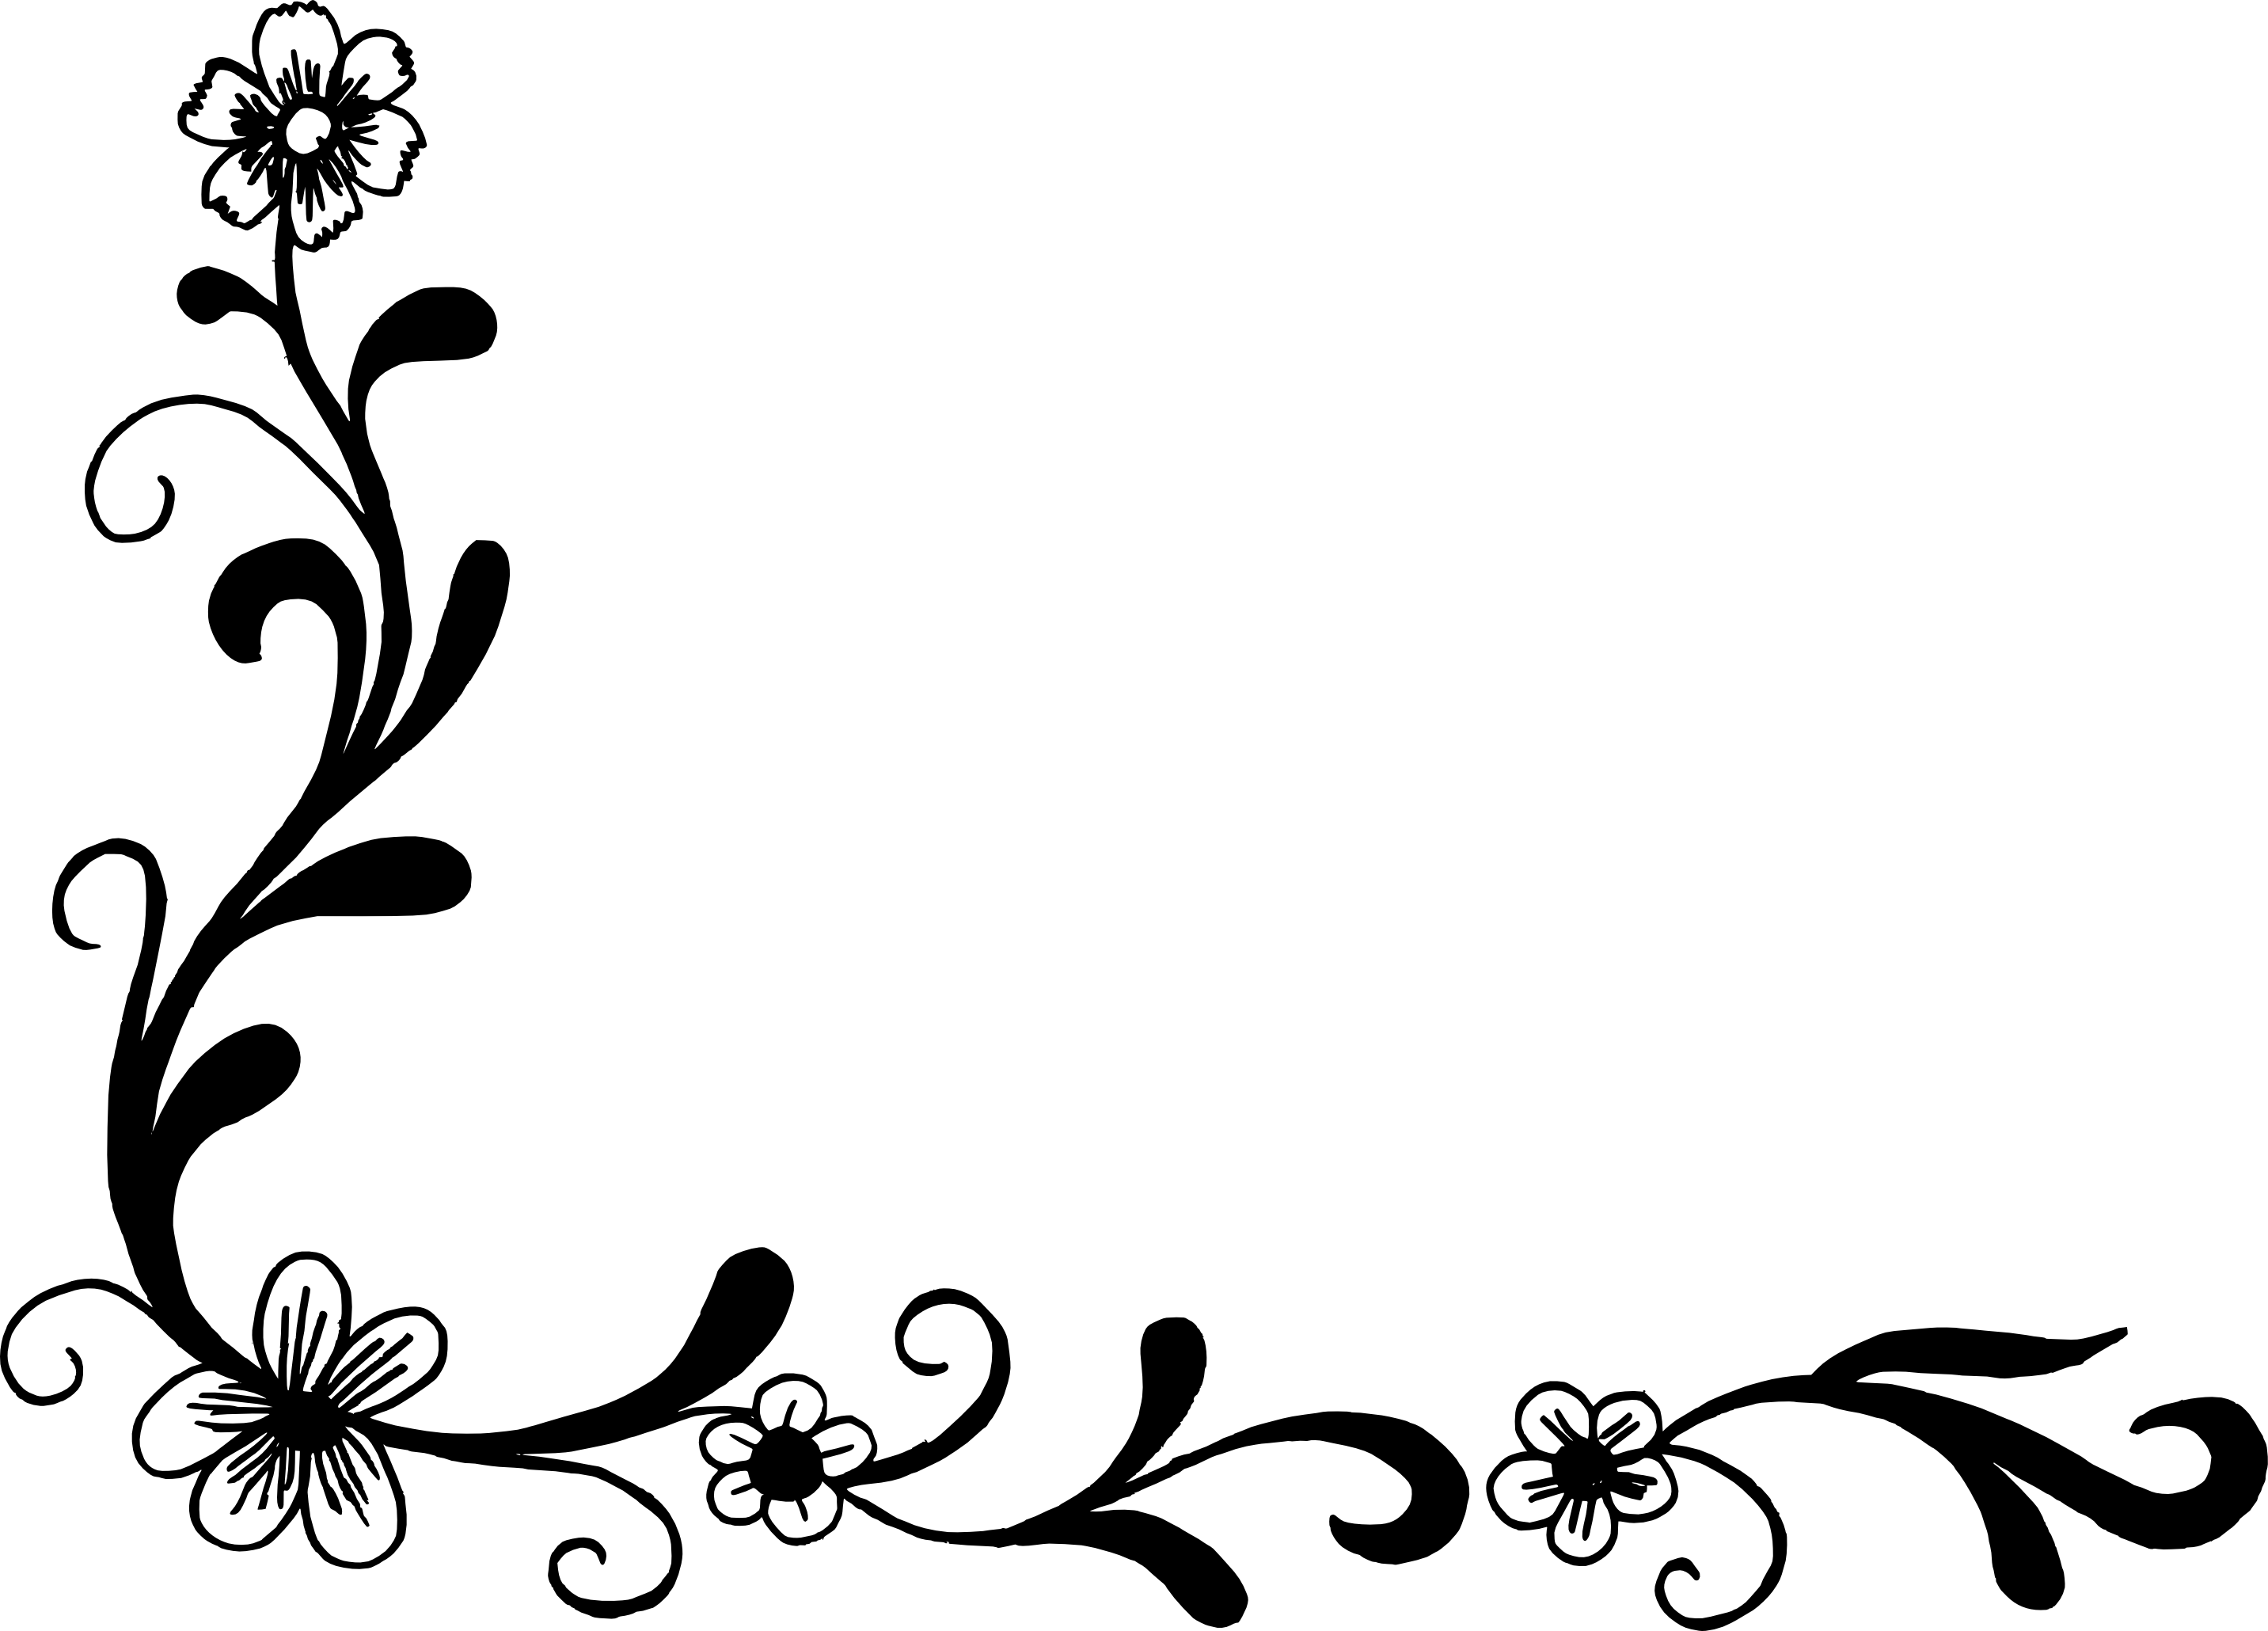 18 Flower Corner Vector (PNG Transparent, SVG).